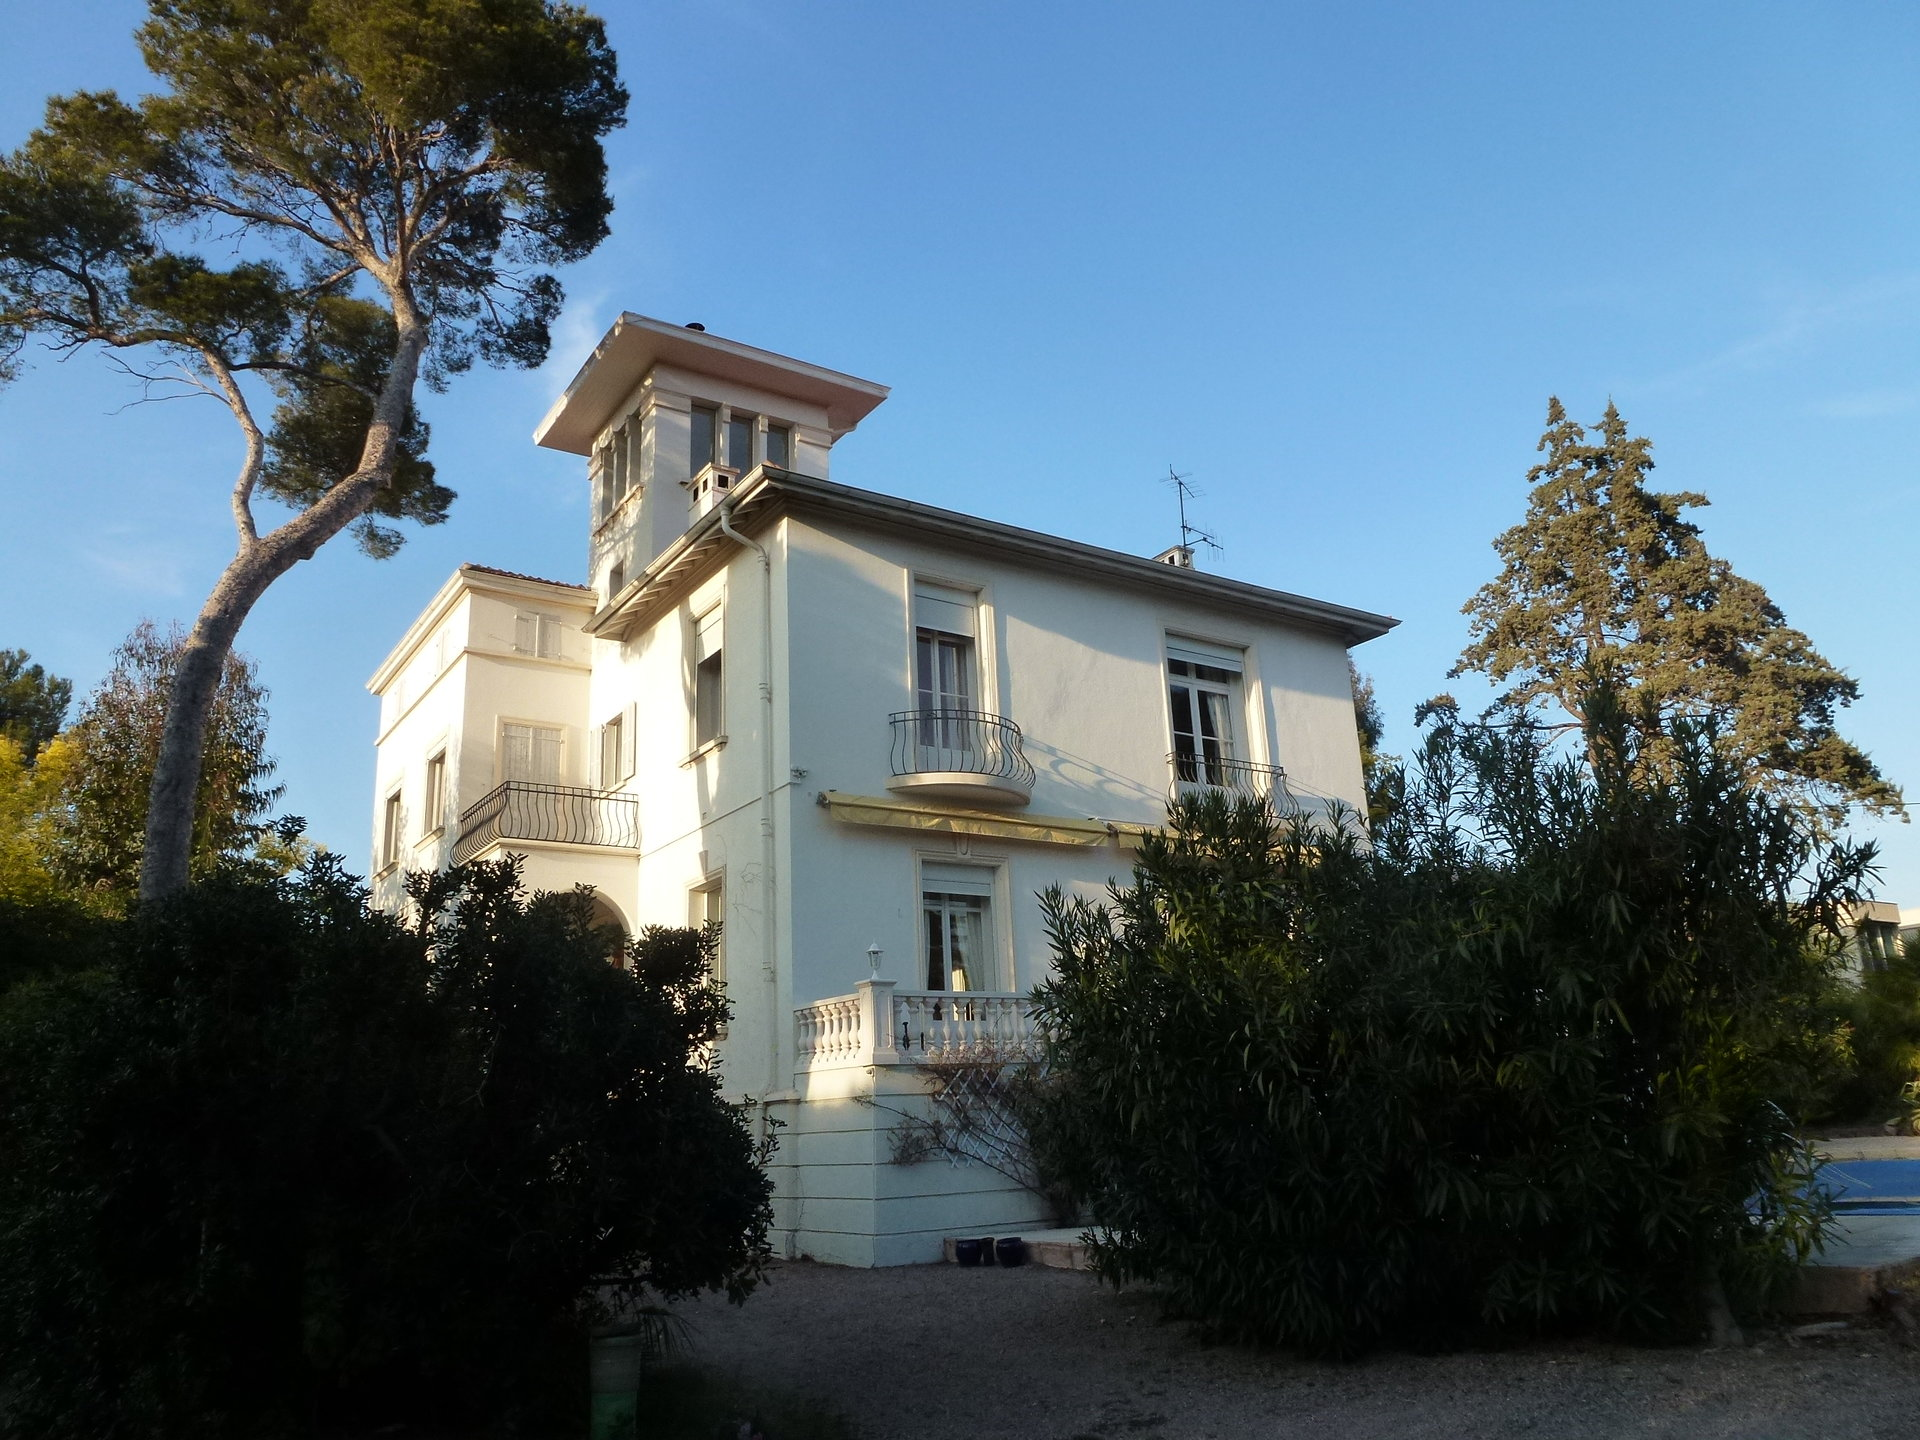 Villa belle époque close to the sea in Saint-Raphaël